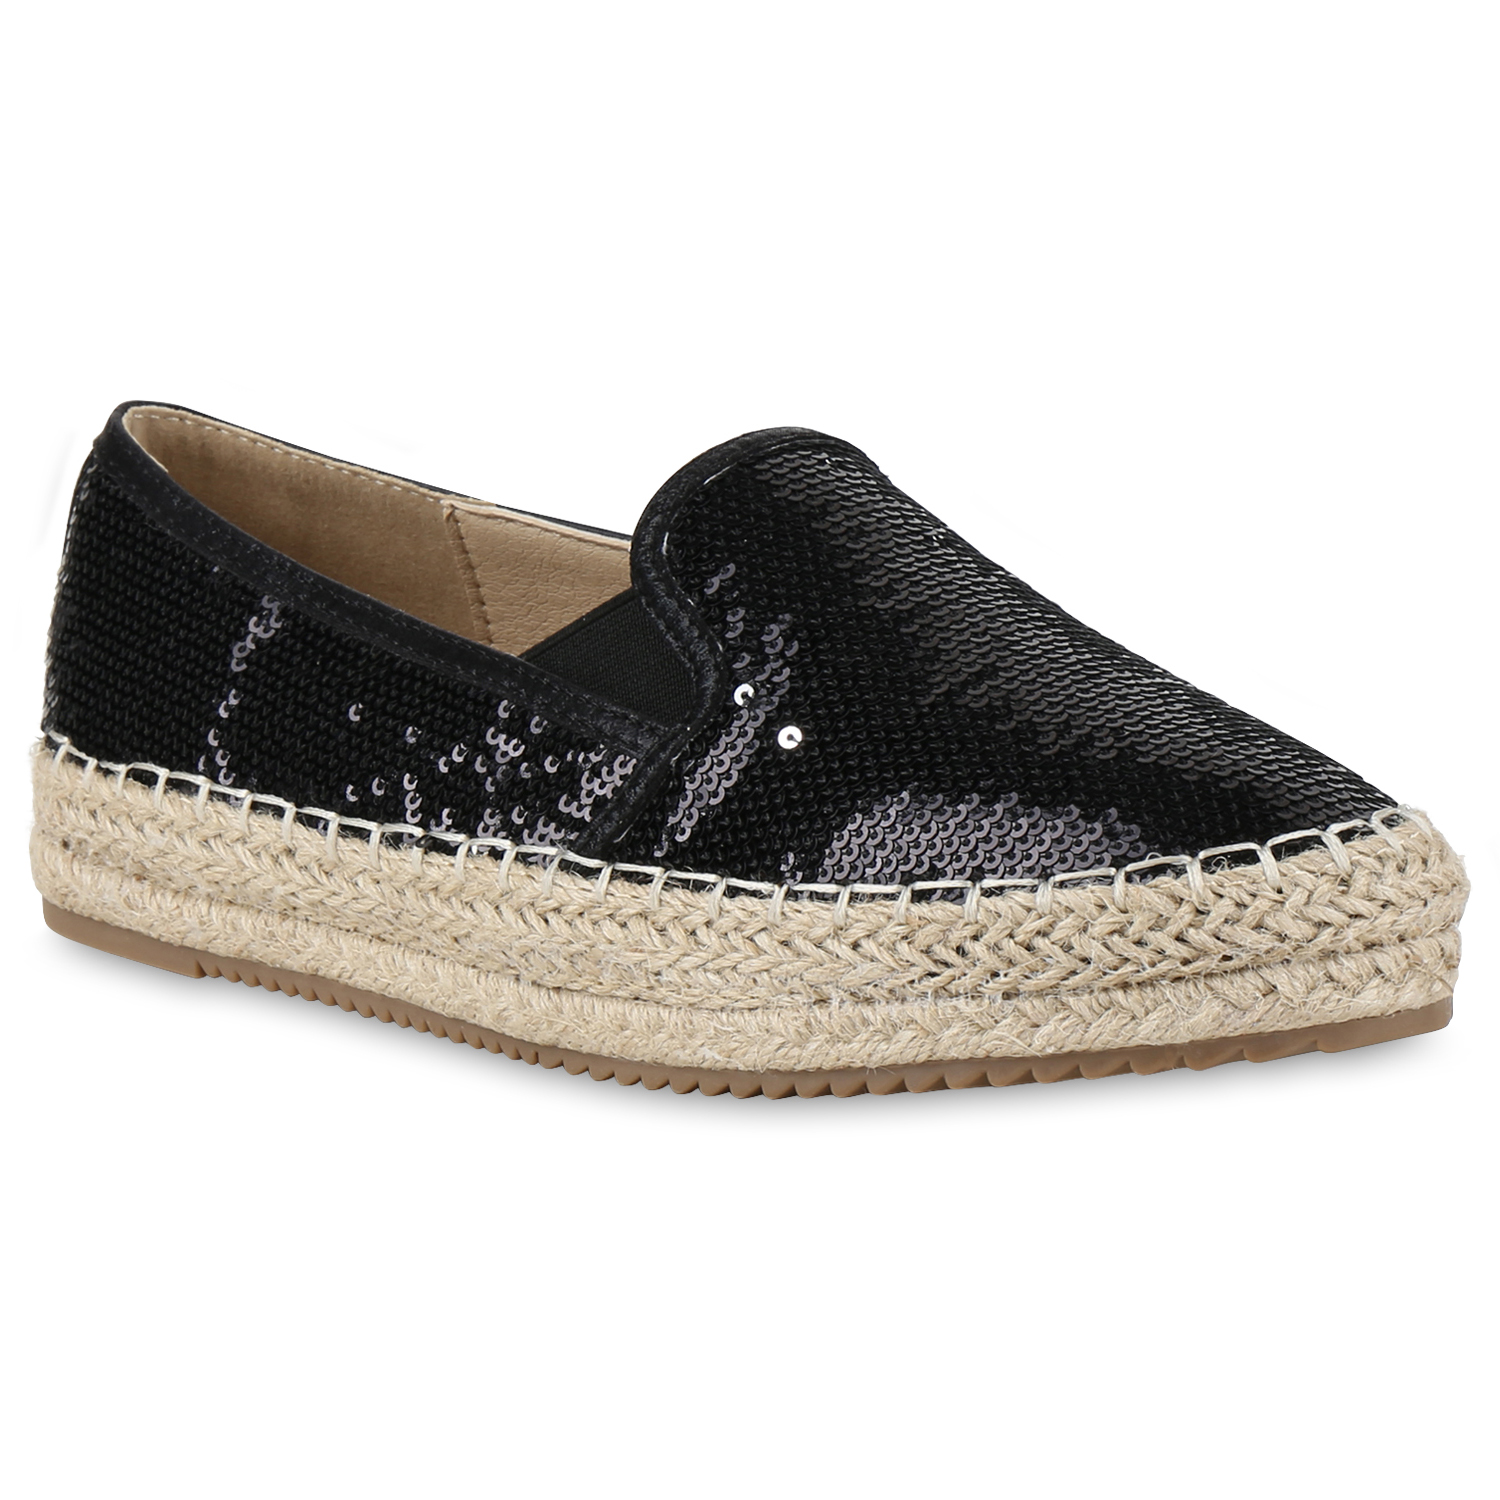 damen slipper espadrilles pailletten schuhe bast stoffschuhe 814510 ebay. Black Bedroom Furniture Sets. Home Design Ideas